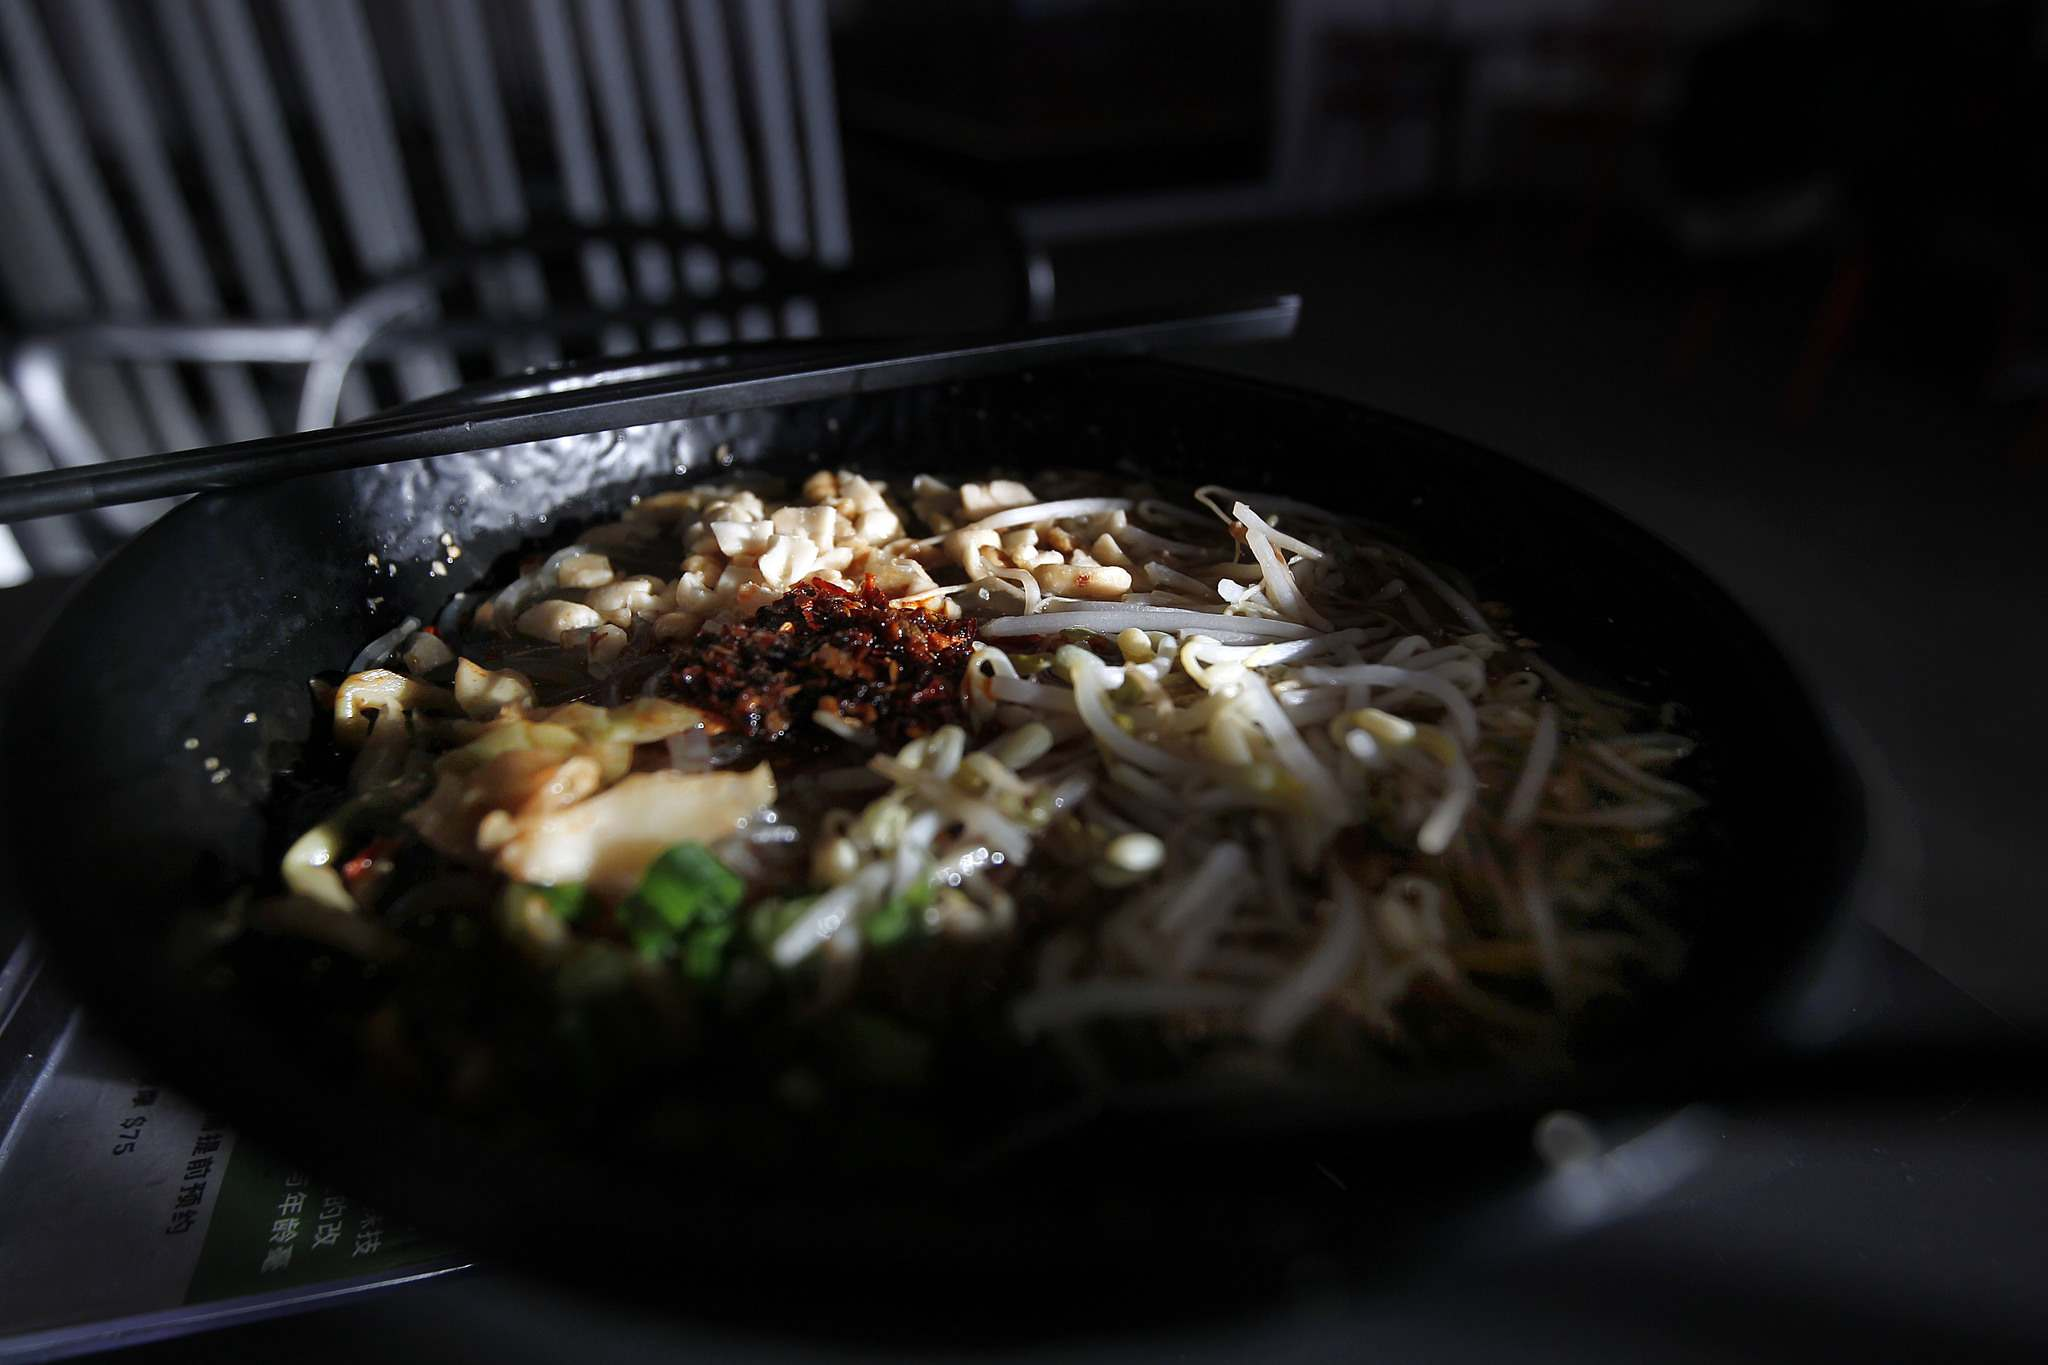 Alfy's Noodle House at 840 Waverley St., serves up a mean sour and spicy sweet potato noodle soup. The strip-mall location offers a varied and flavourful menu, while maintaining a chic atmosphere. (Phil Hossack photos / Winnipeg Free Press)